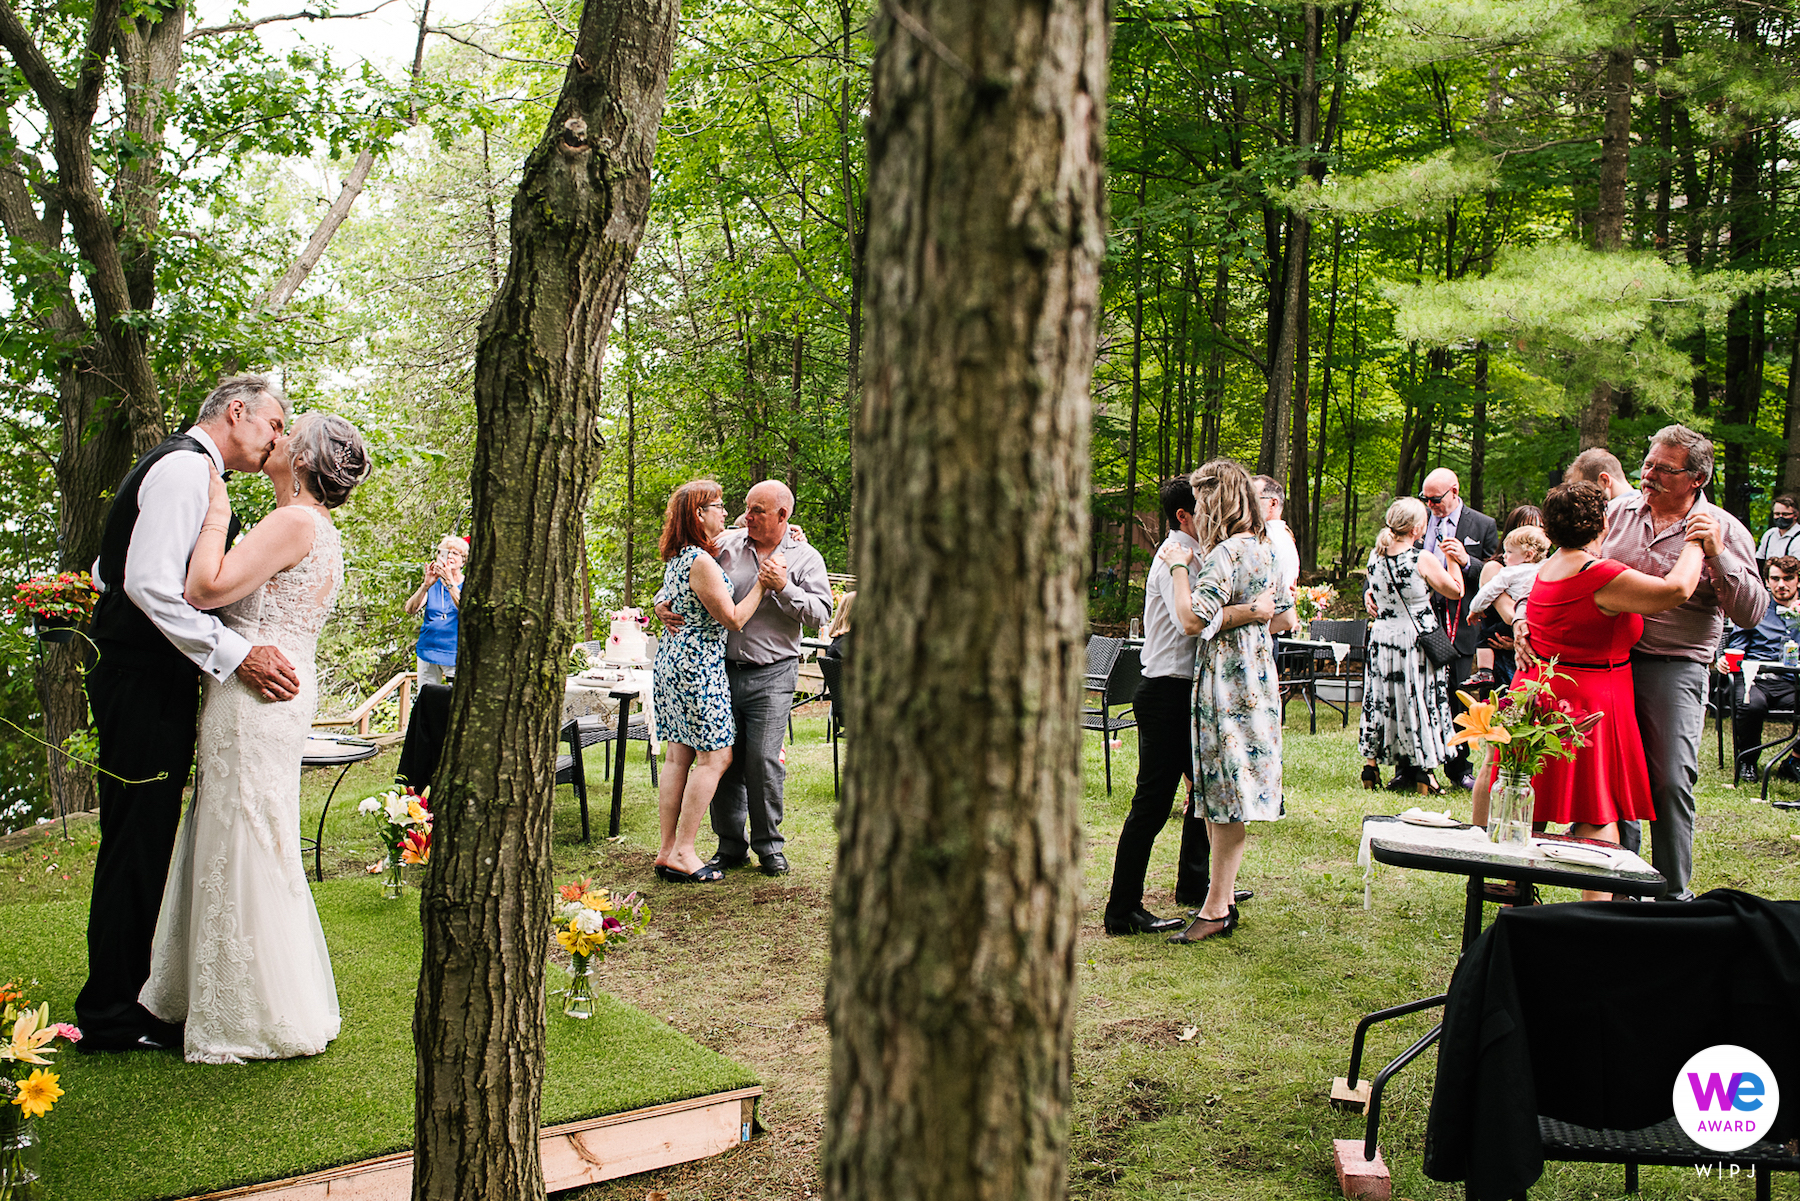 Ontario Elopement and Wedding Photographers | Slow dance in the backyard, while social distancing with their family